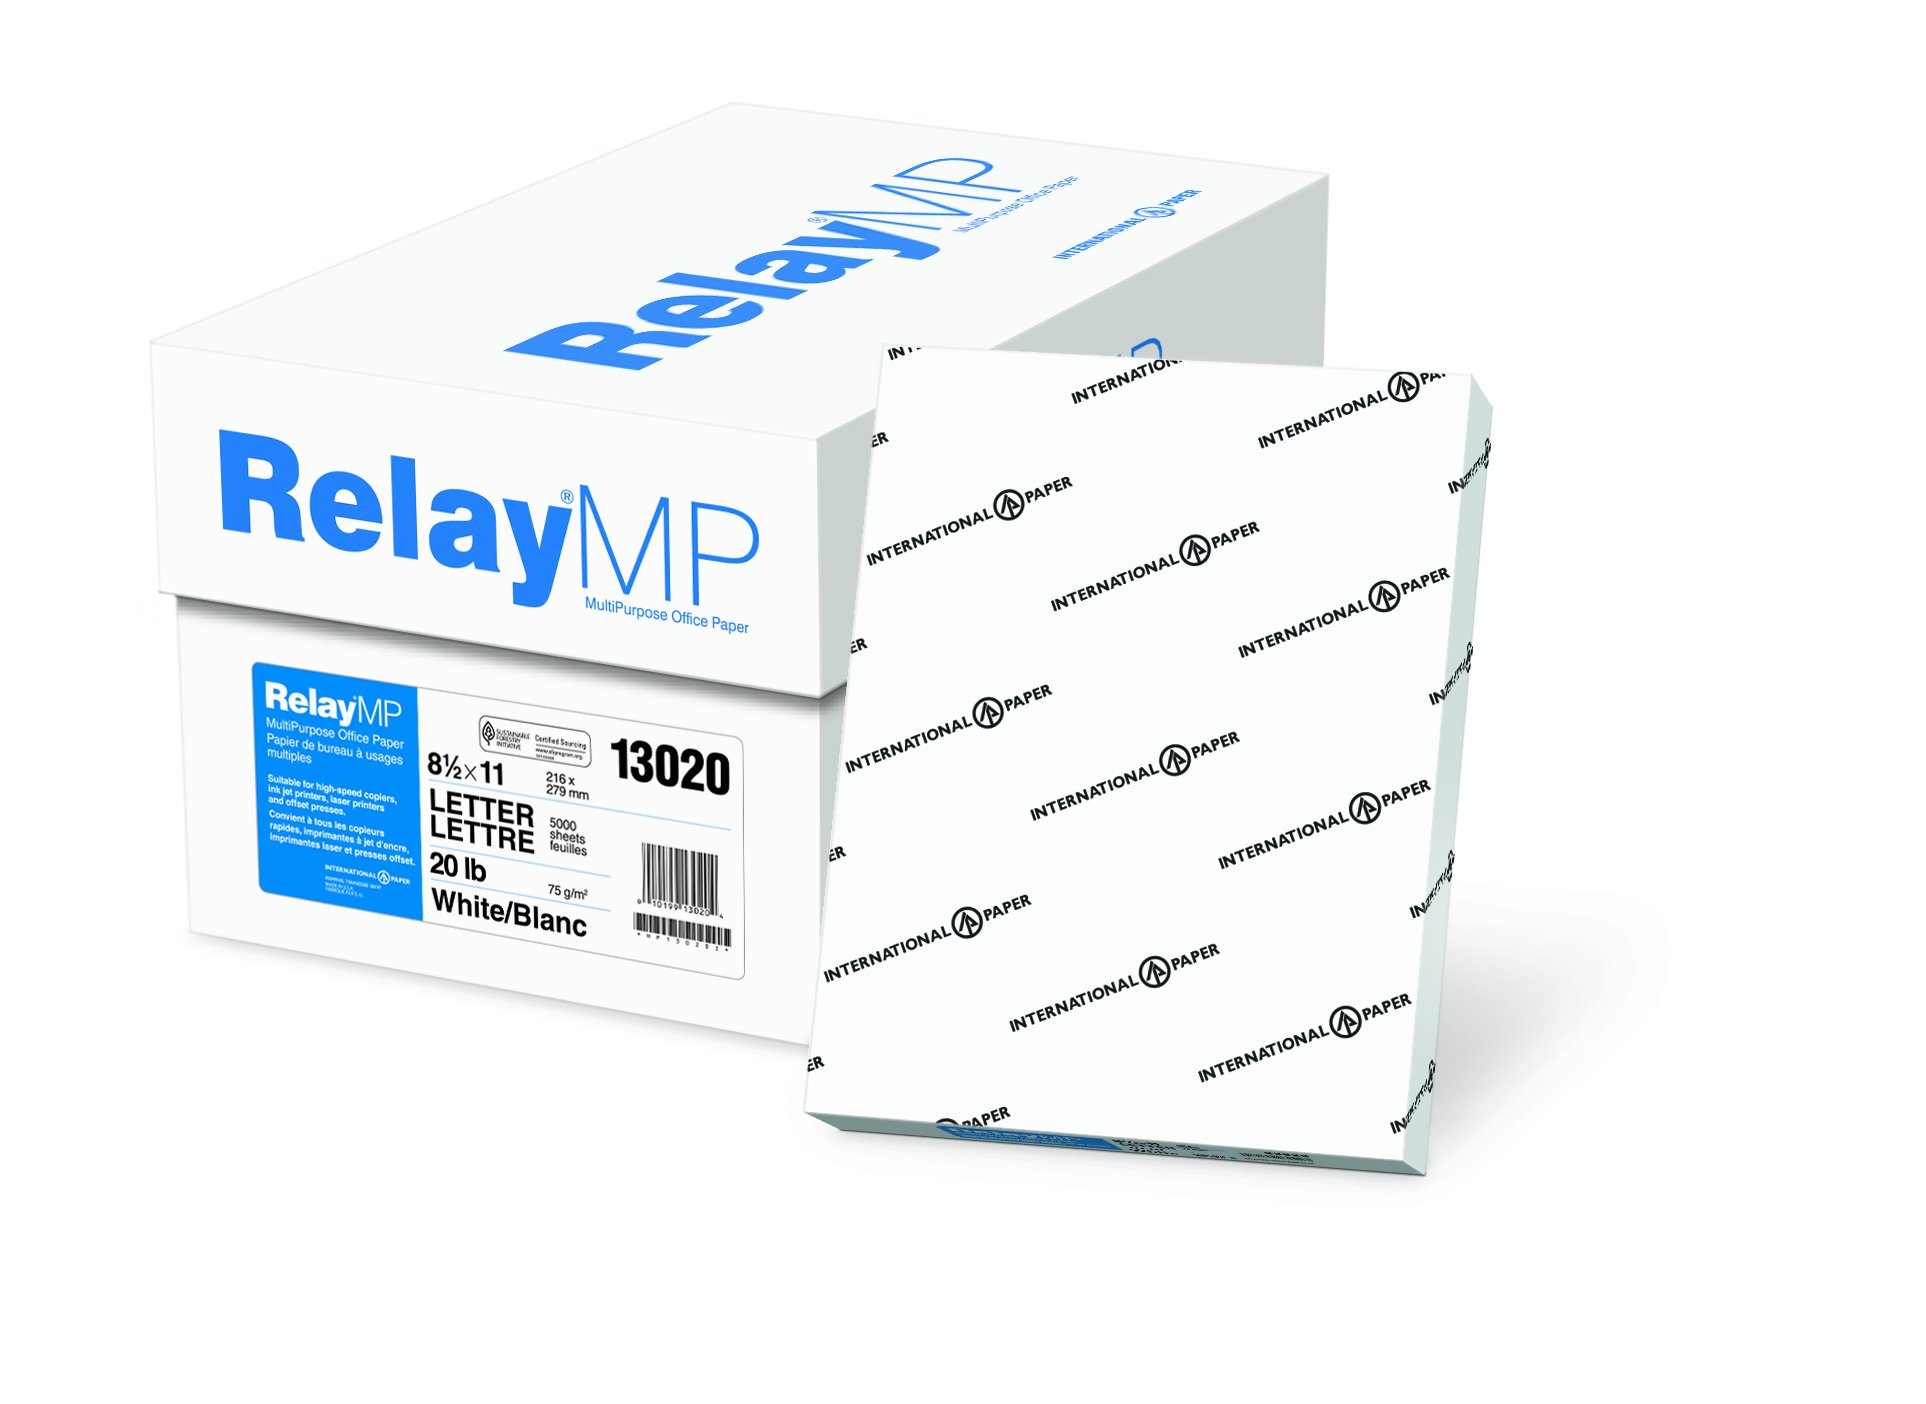 Relay Multipurpose Copy Paper, 8.5 x 11 Paper, 20lb Paper, Letter Size, 92 Bright, 10 Reams / 5,000 Sheets, Acid Free Paper (013020C)